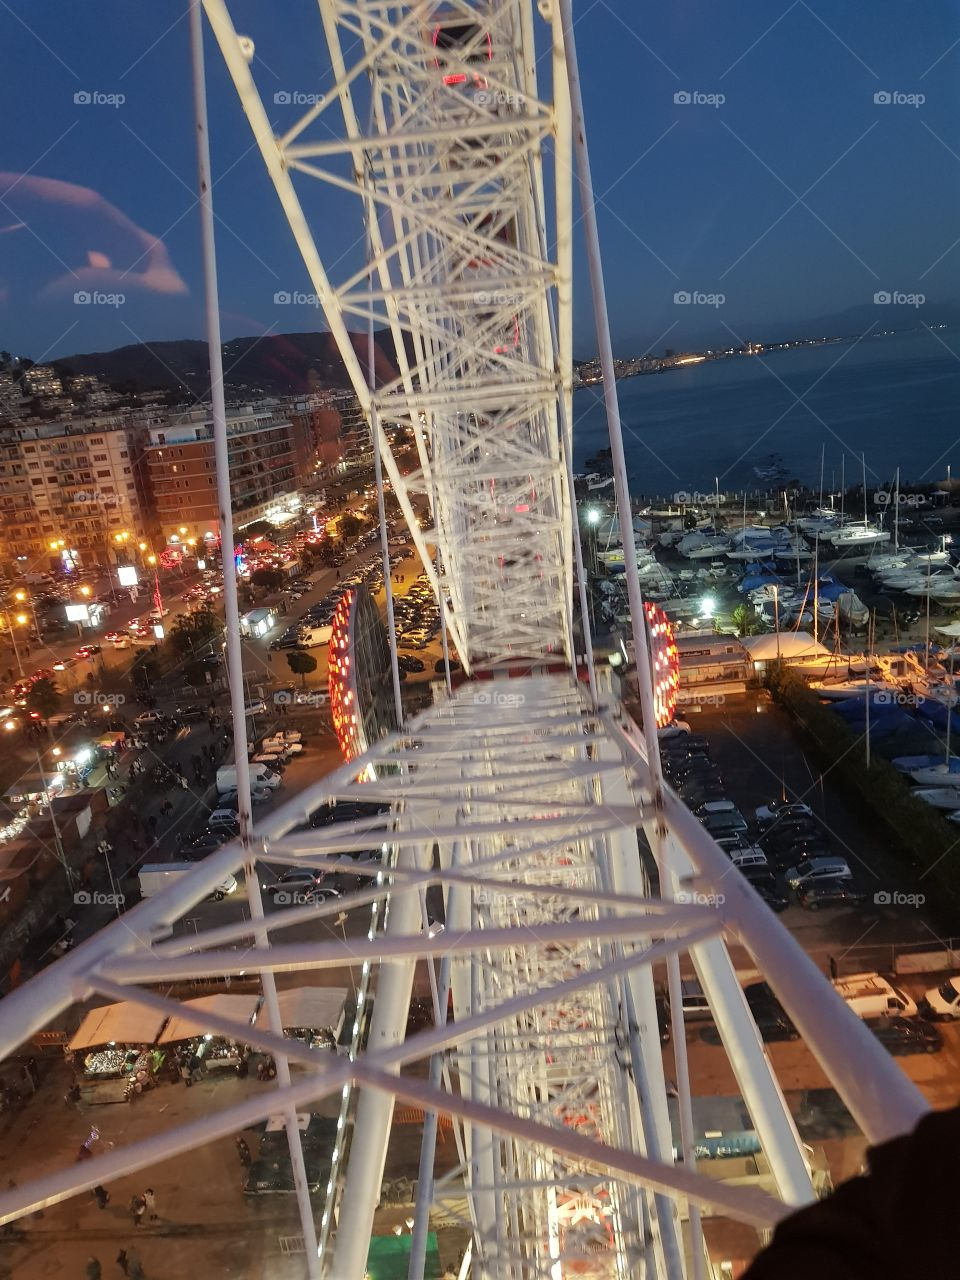 on the big wheel in Salerno, Italy